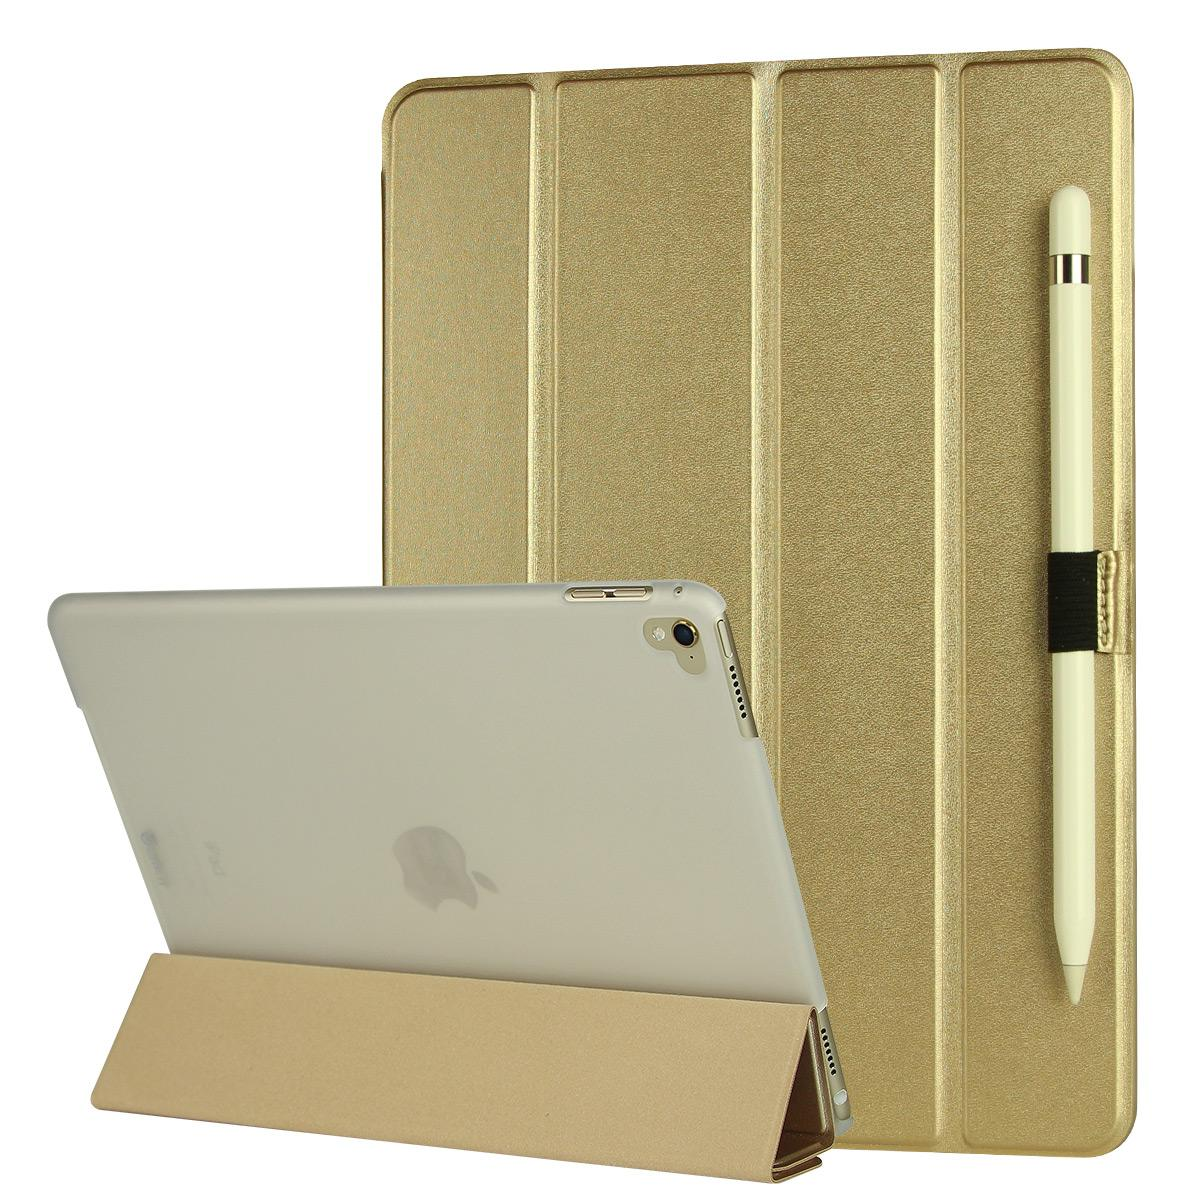 Ultra slim leather case for iPad Pro 9.7 with pen holder